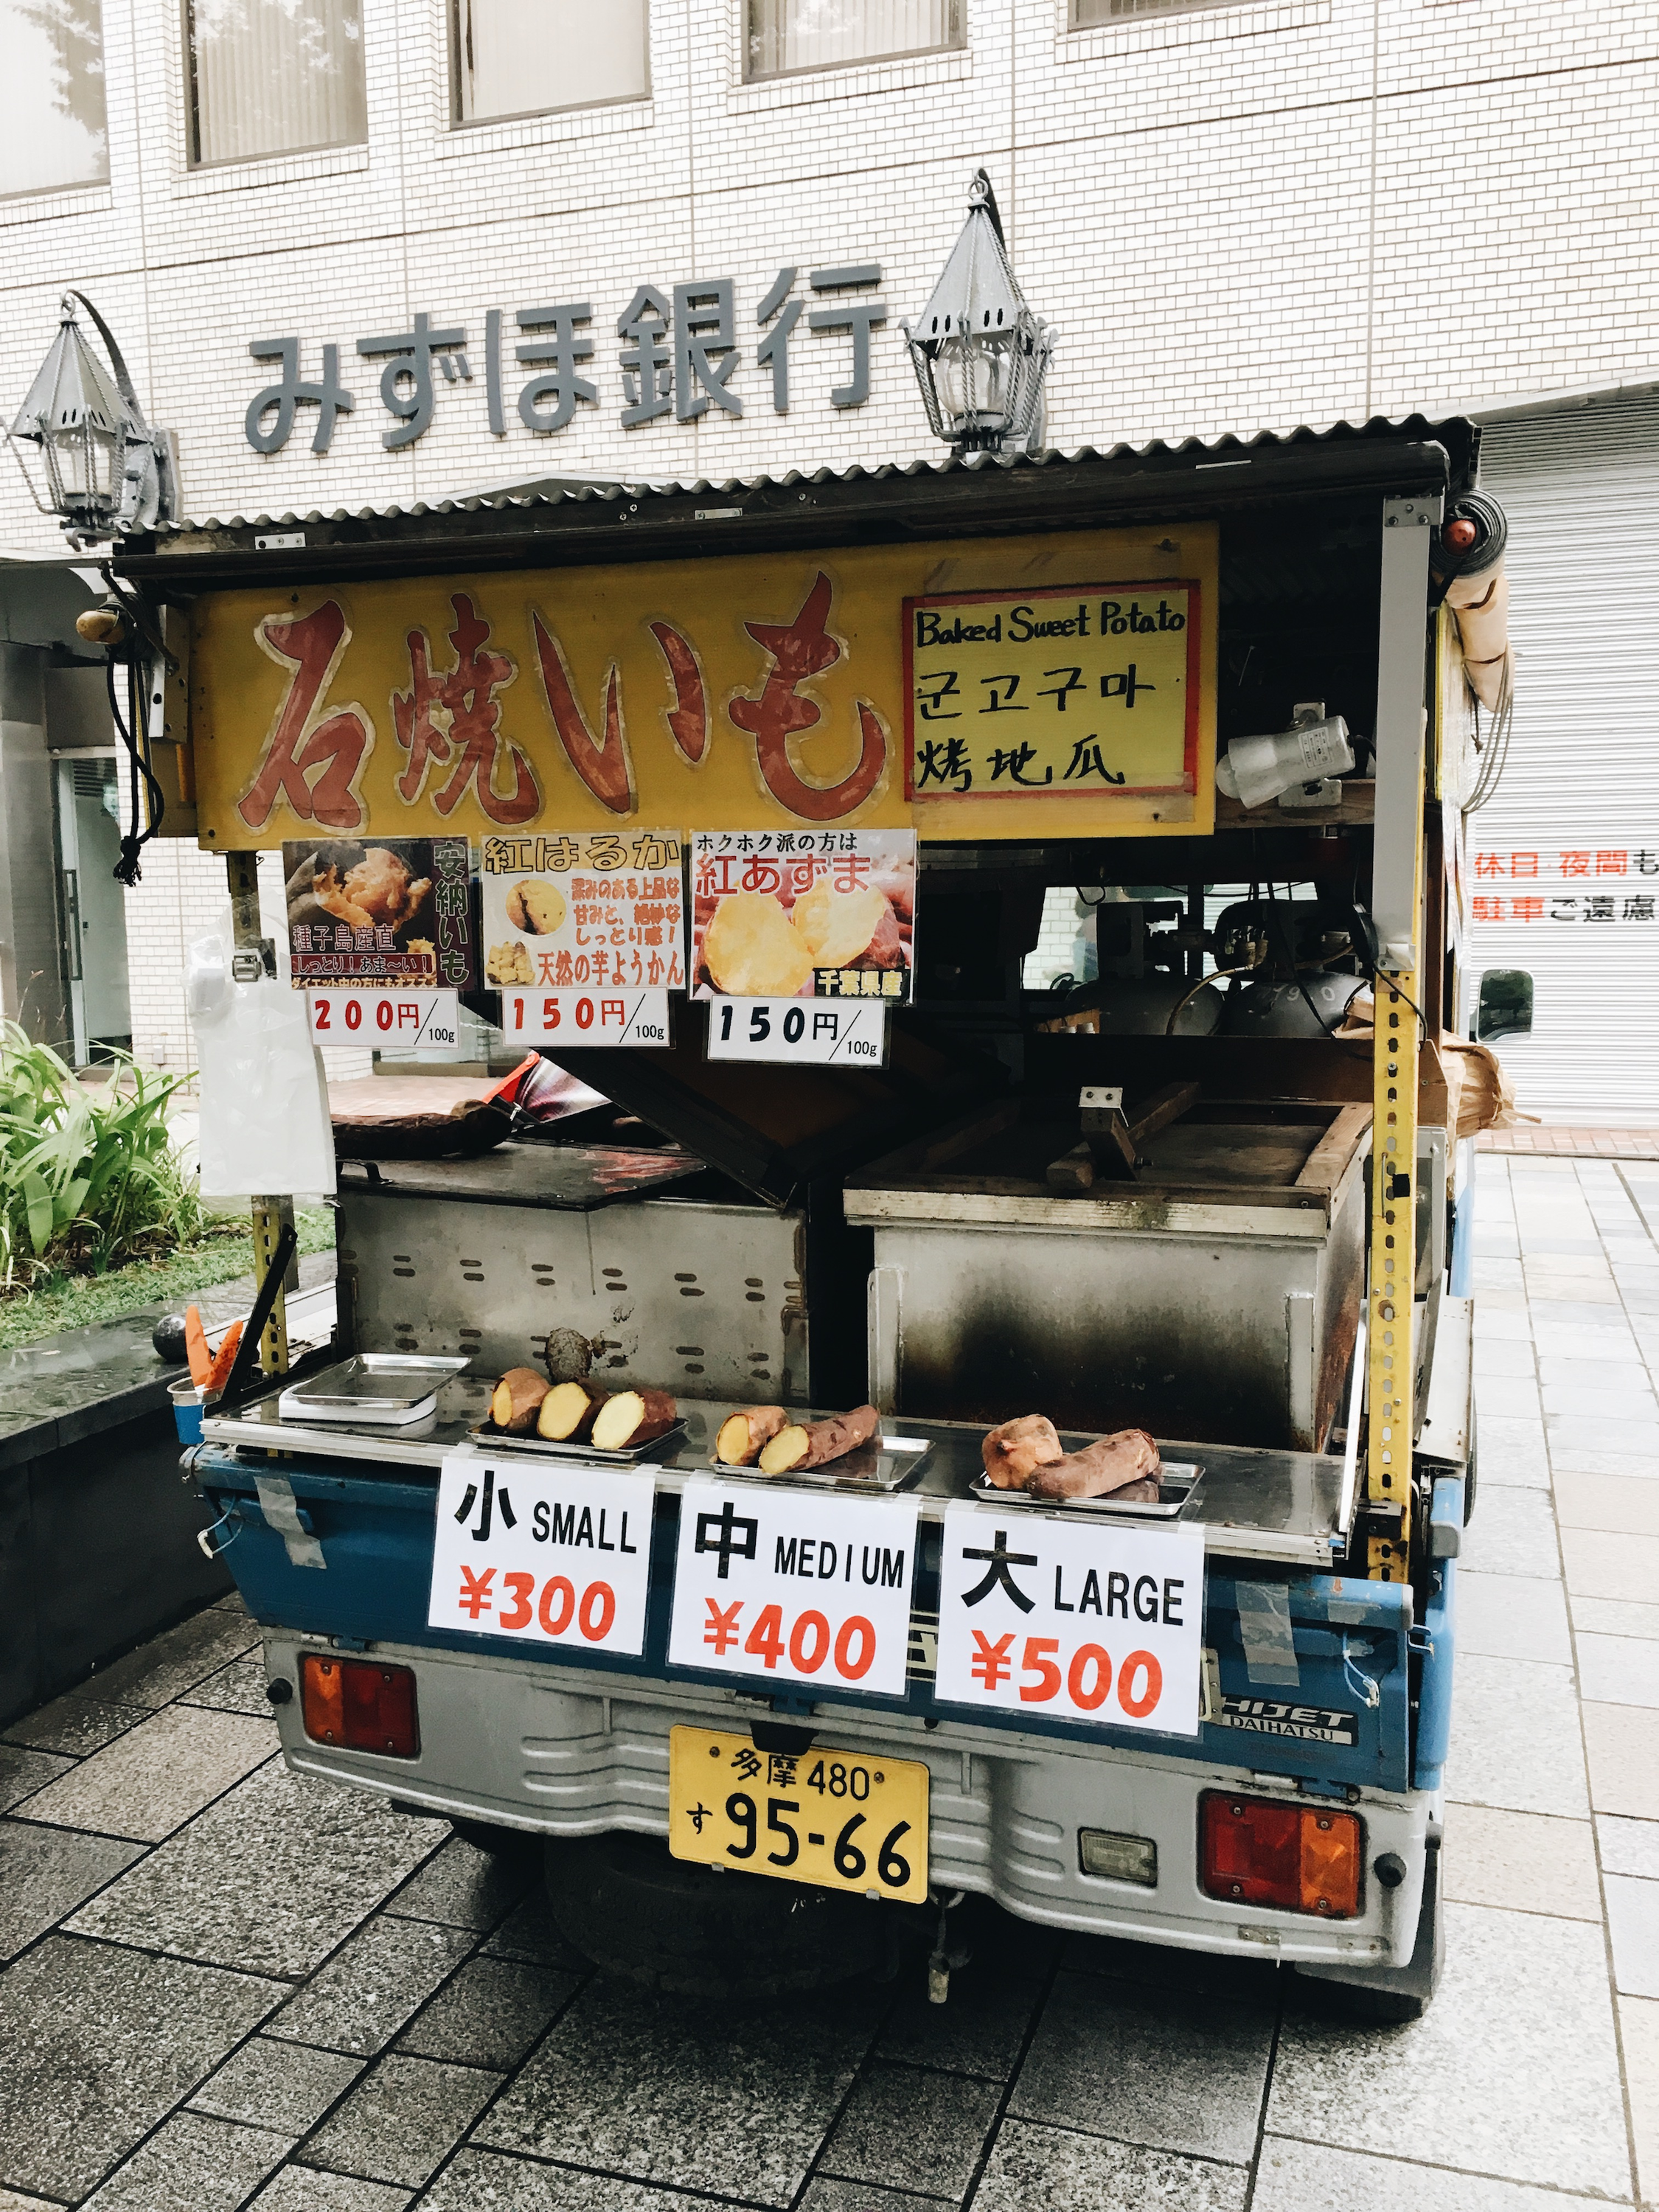 Yaki-imo truck | Time Out Tokyo